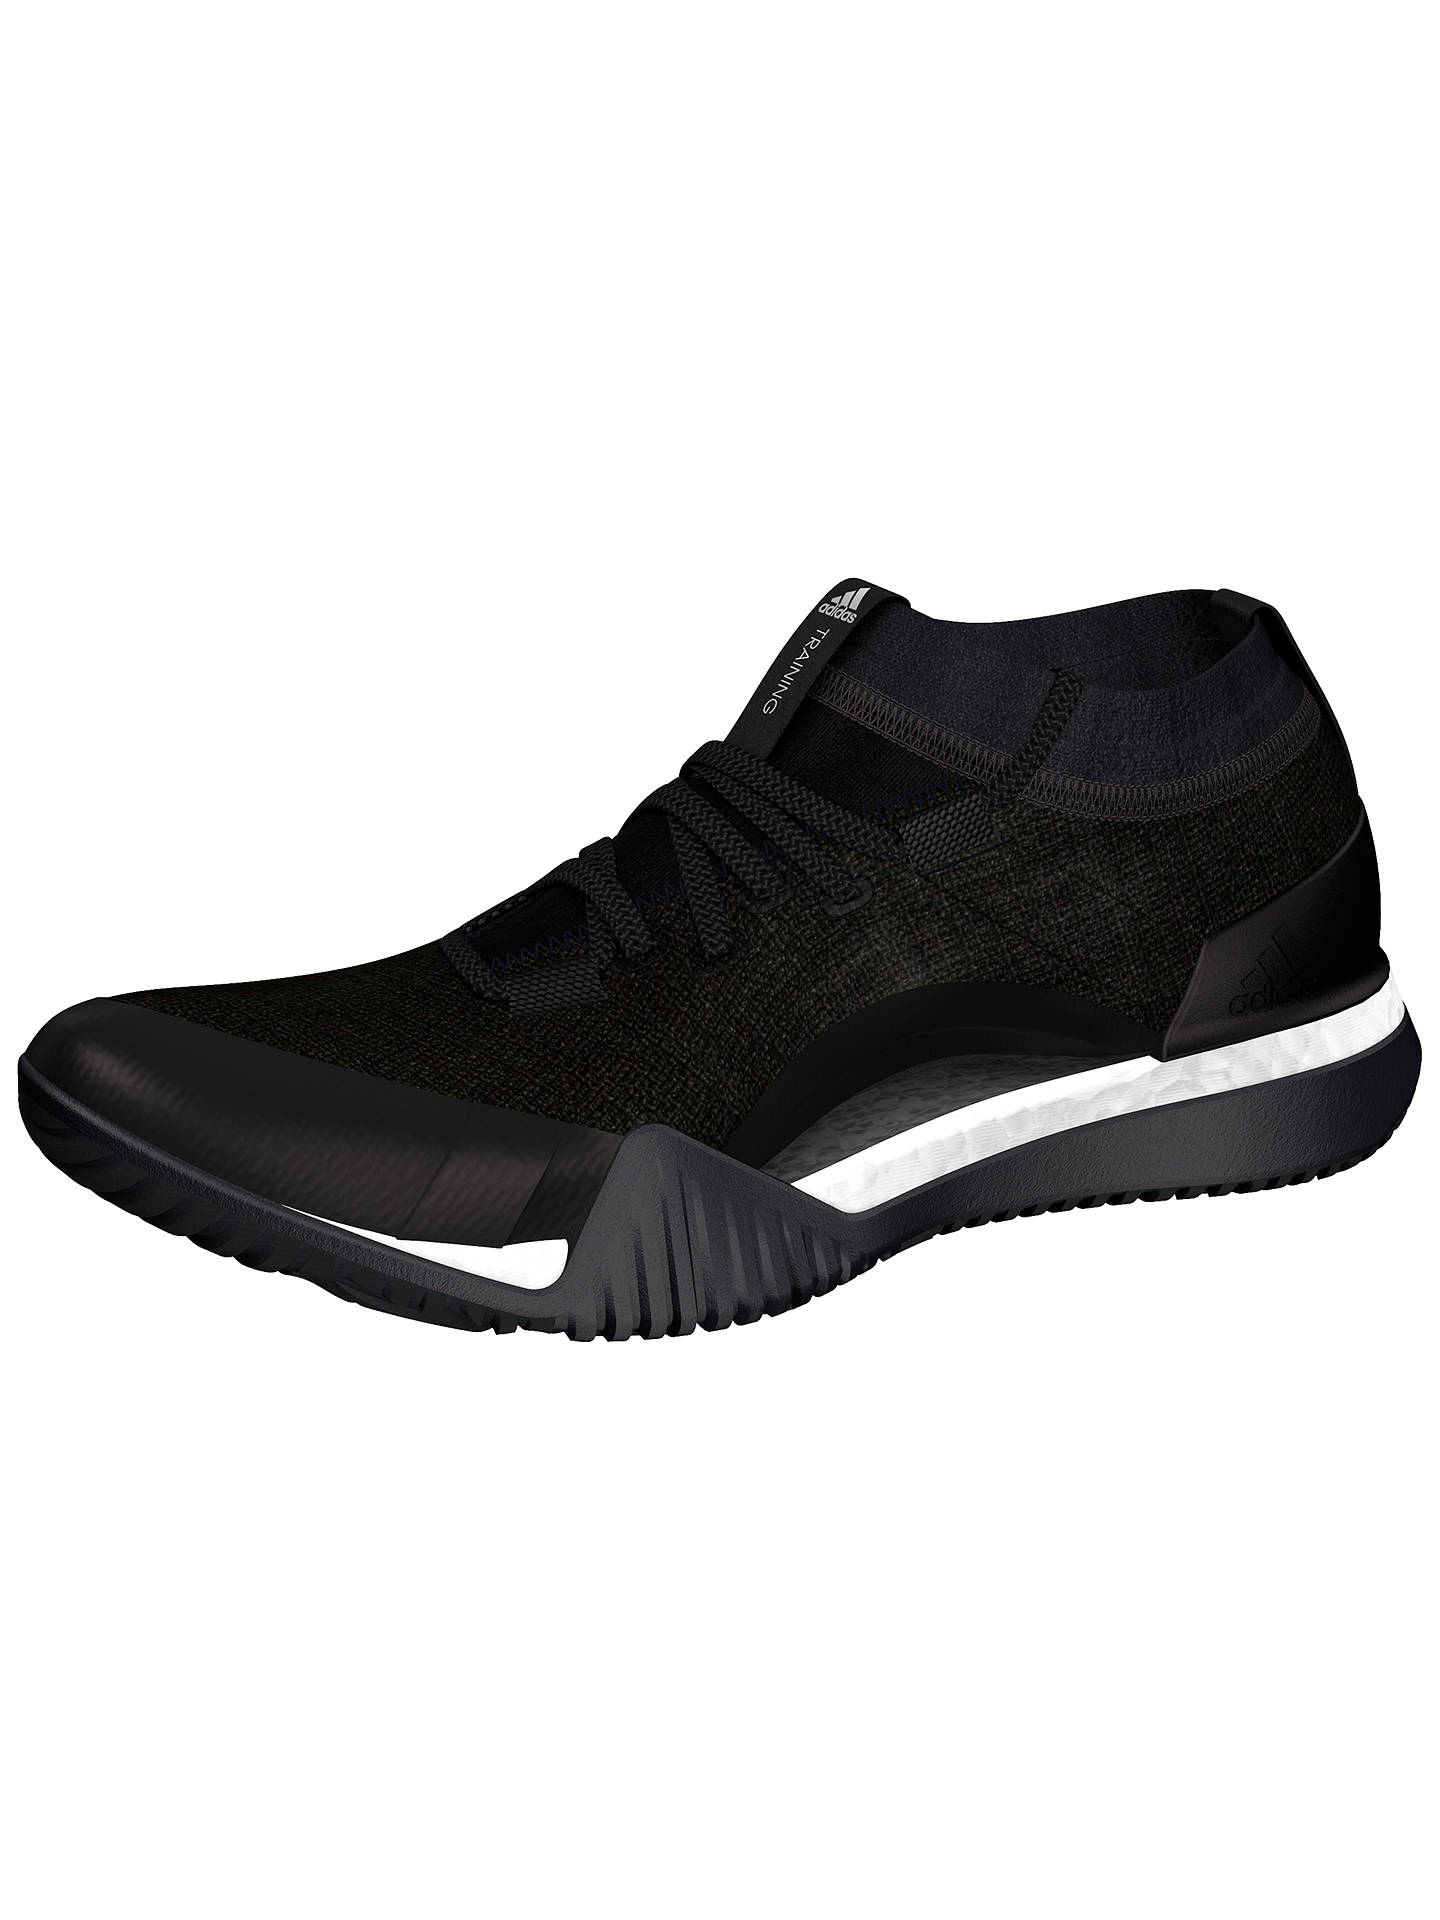 dcc5550669f37 Buy adidas Pure Boost X TR3 Training Shoes